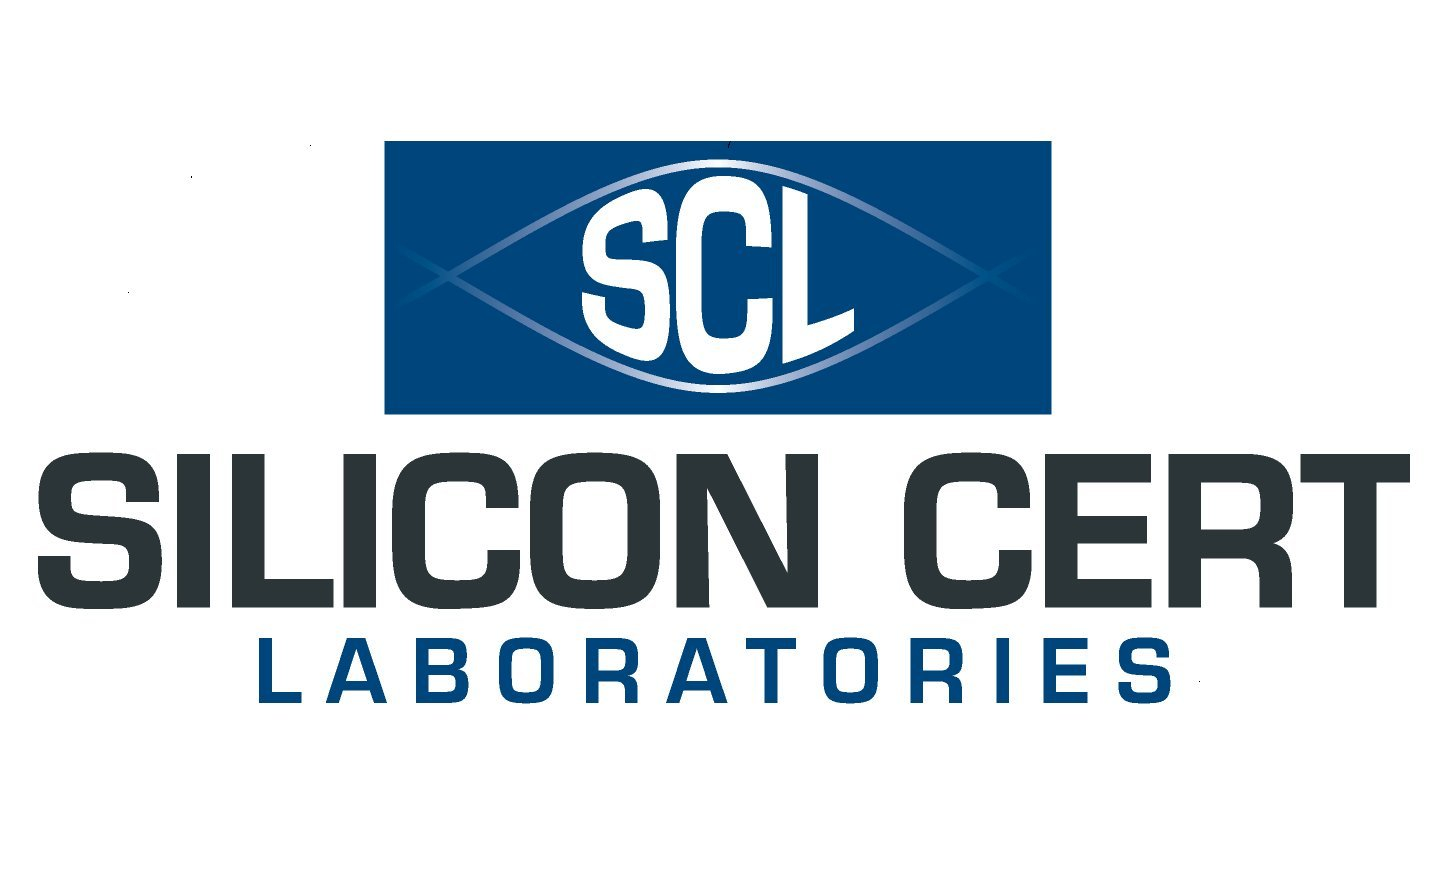 Silicon Cert Laboratories